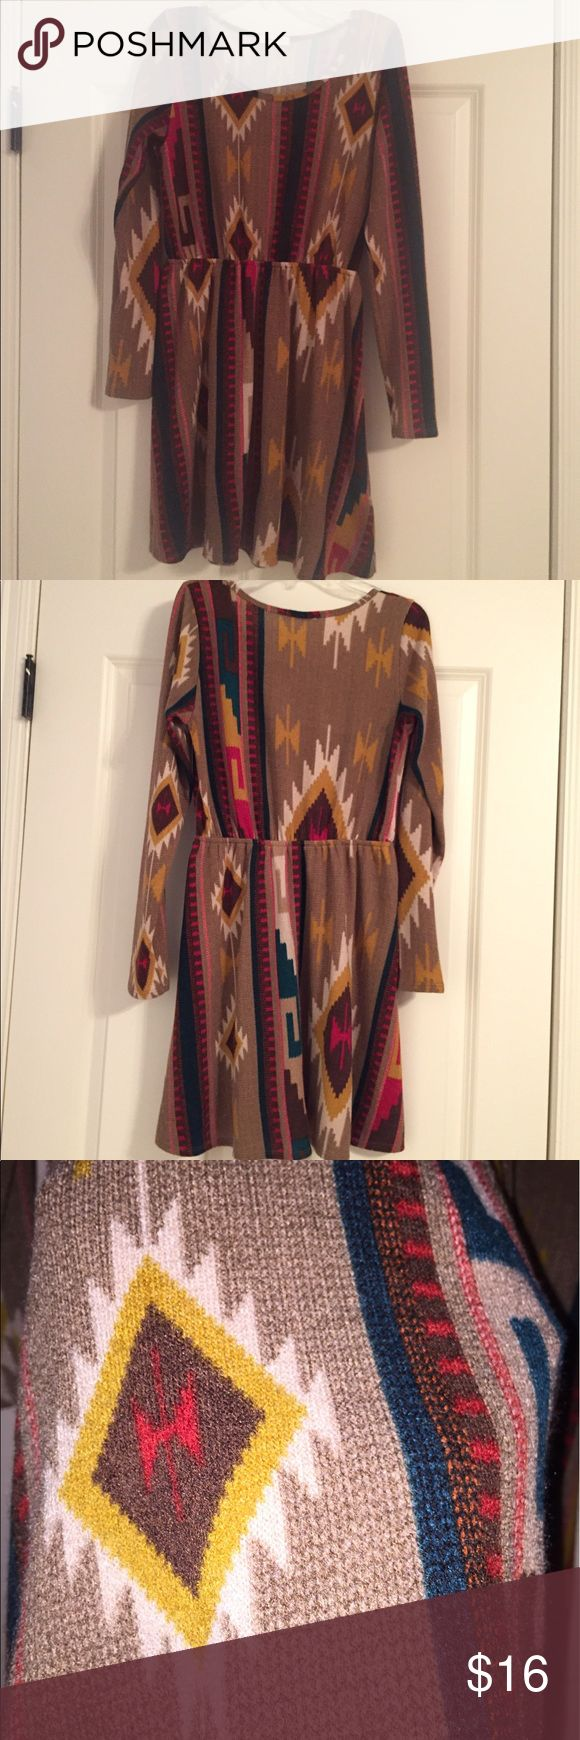 Everly Sweater Dress This is a size small dress!! The aztec print is perfect for any occasion and perfect for pairing with colored jewlery! The dress is made of a comfy sweater material. Worn no more than a few times! Everly Dresses Long Sleeve